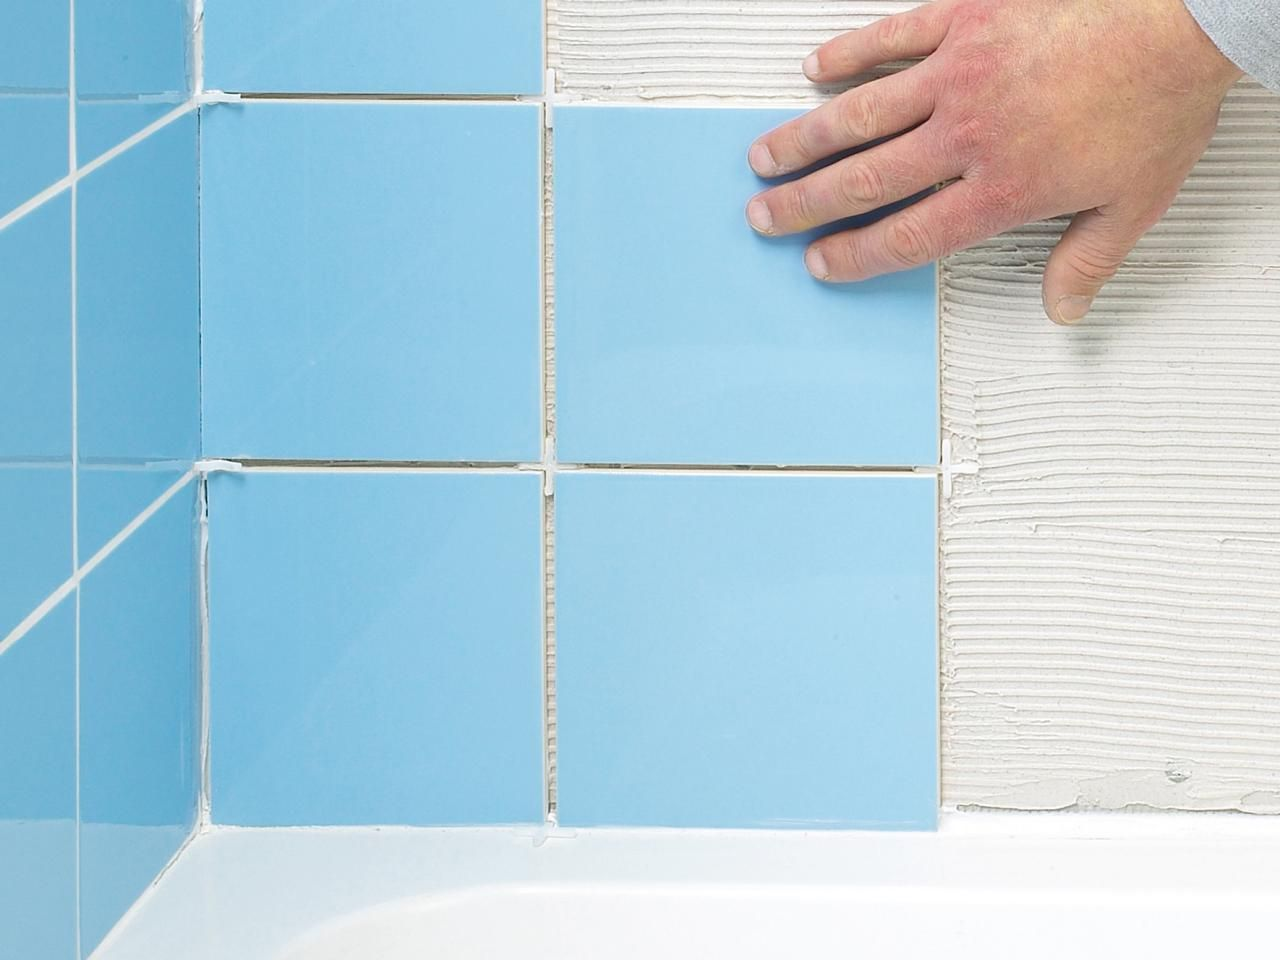 How to Repair Cracked Tiles | Pinterest | Wall tiles, Shower ...